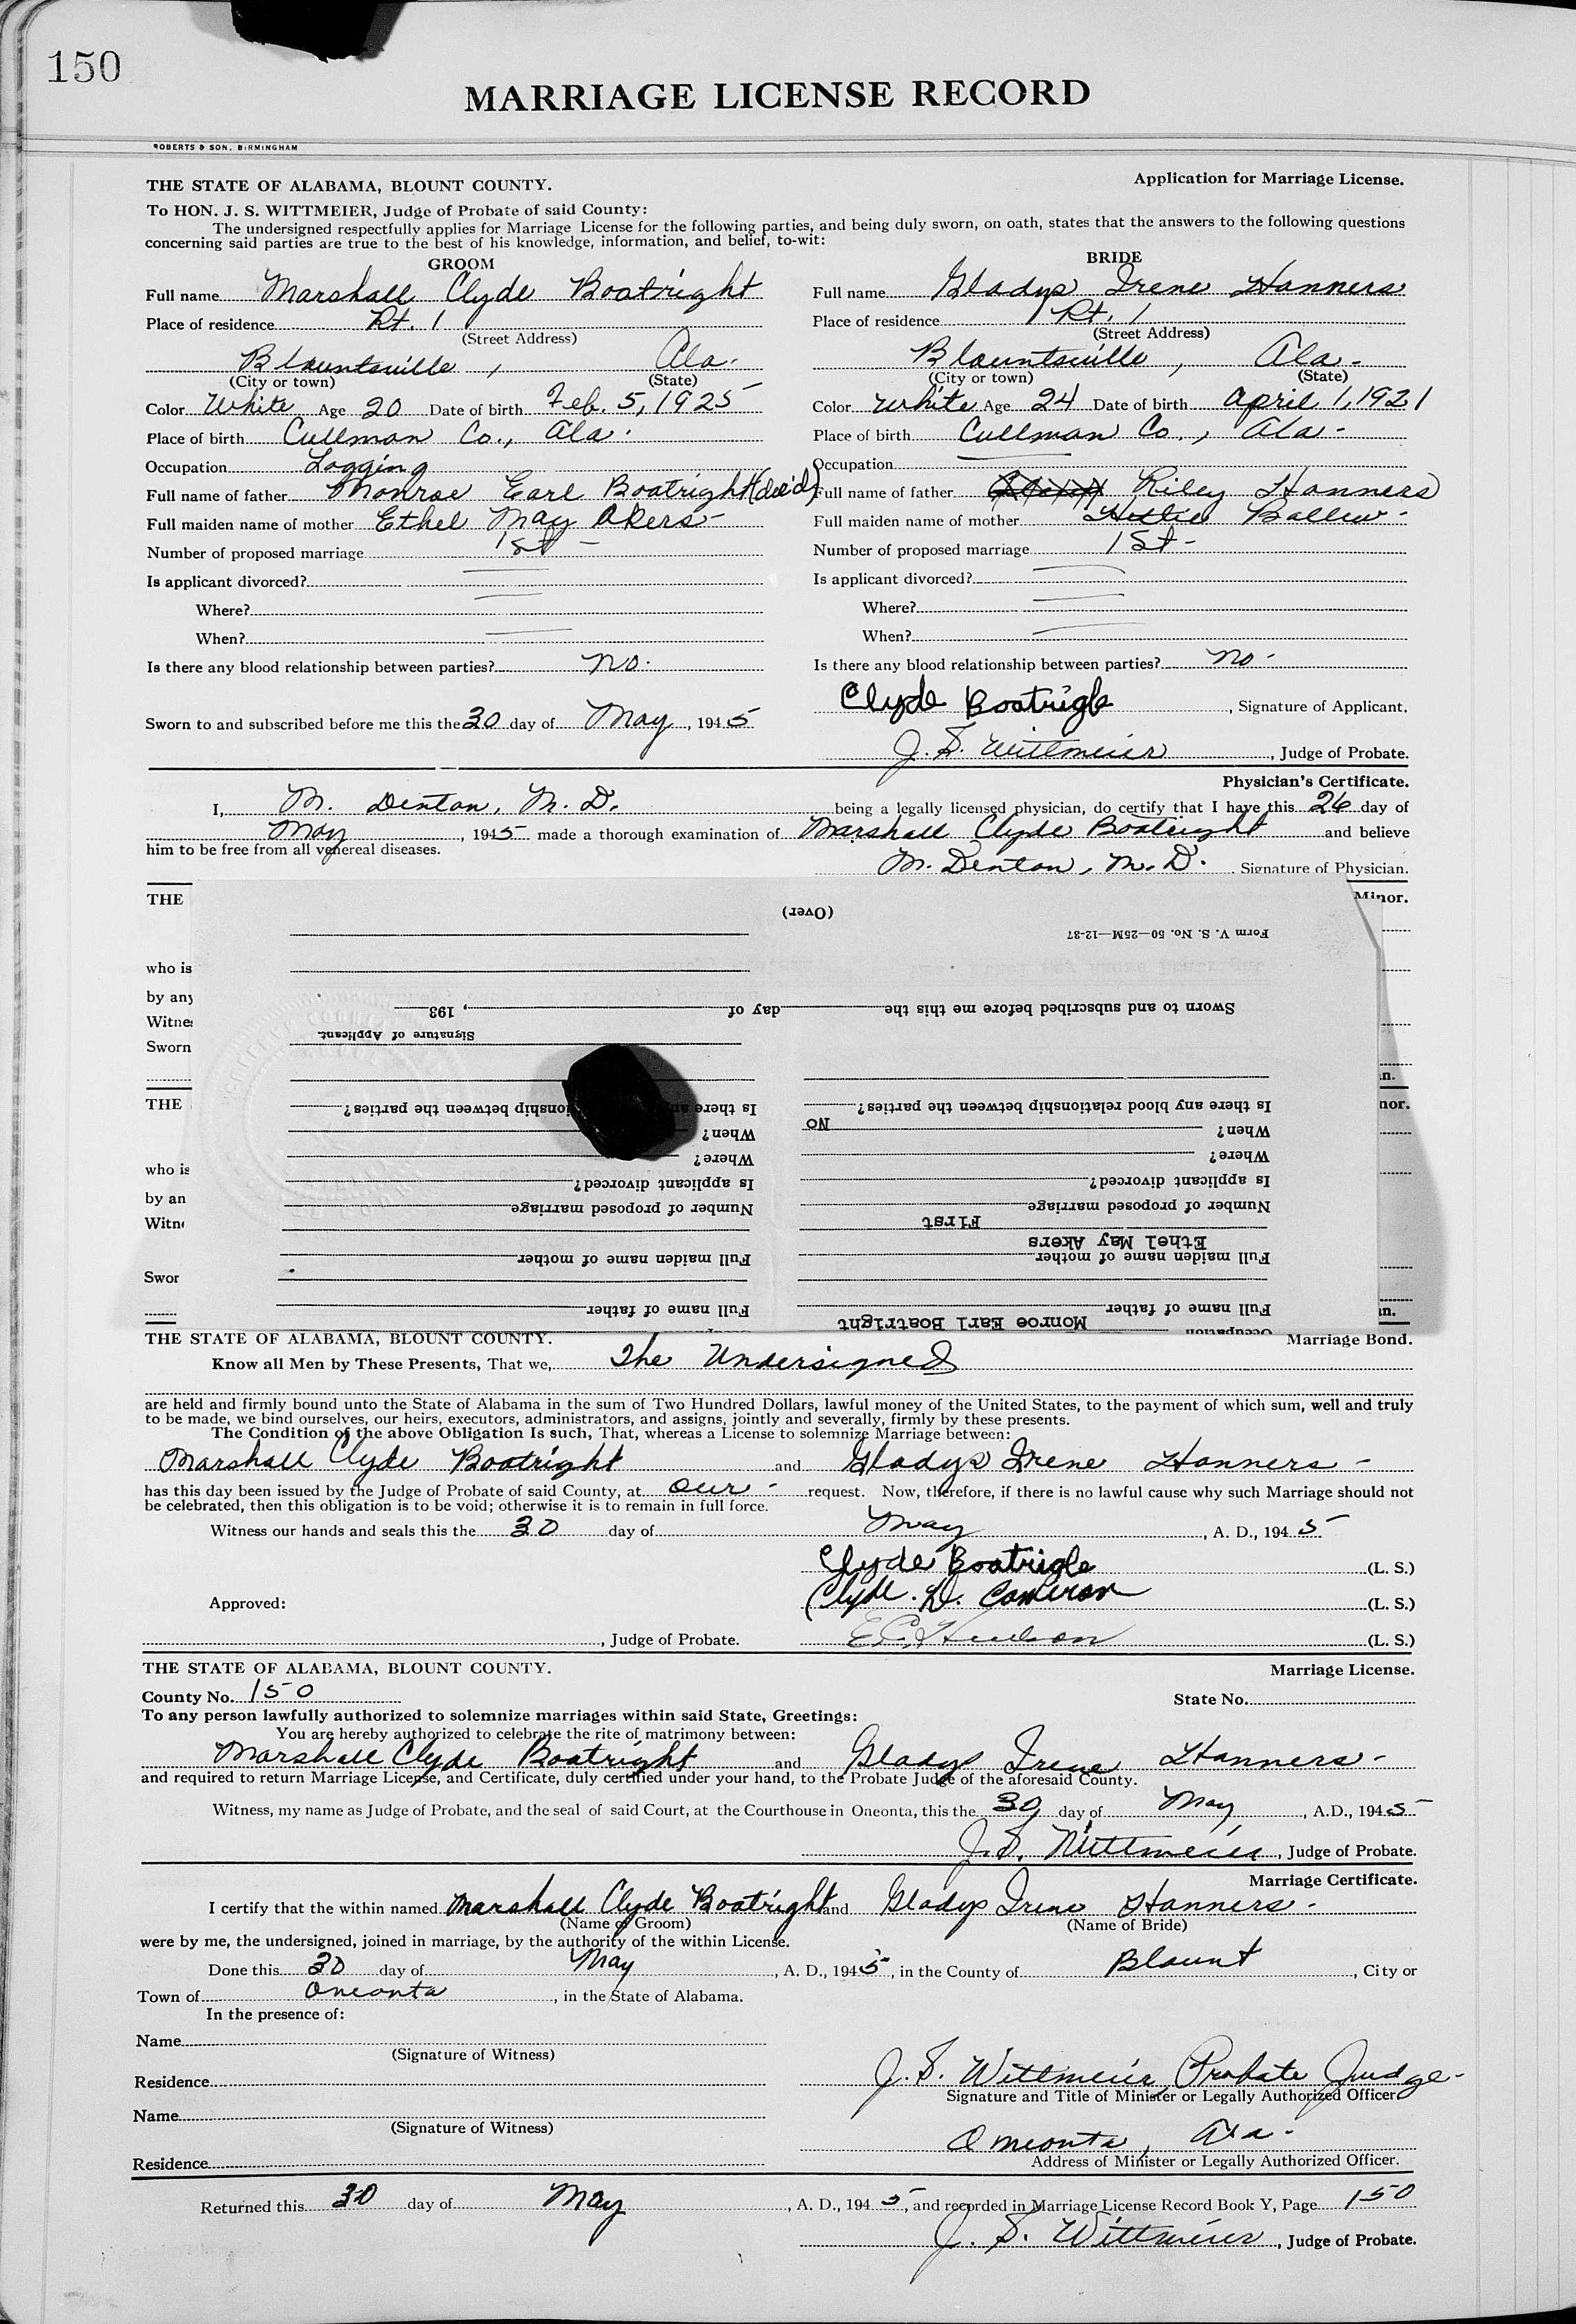 Marshall Clyde and Gladys Irene Hanners Boatright Marriage License: